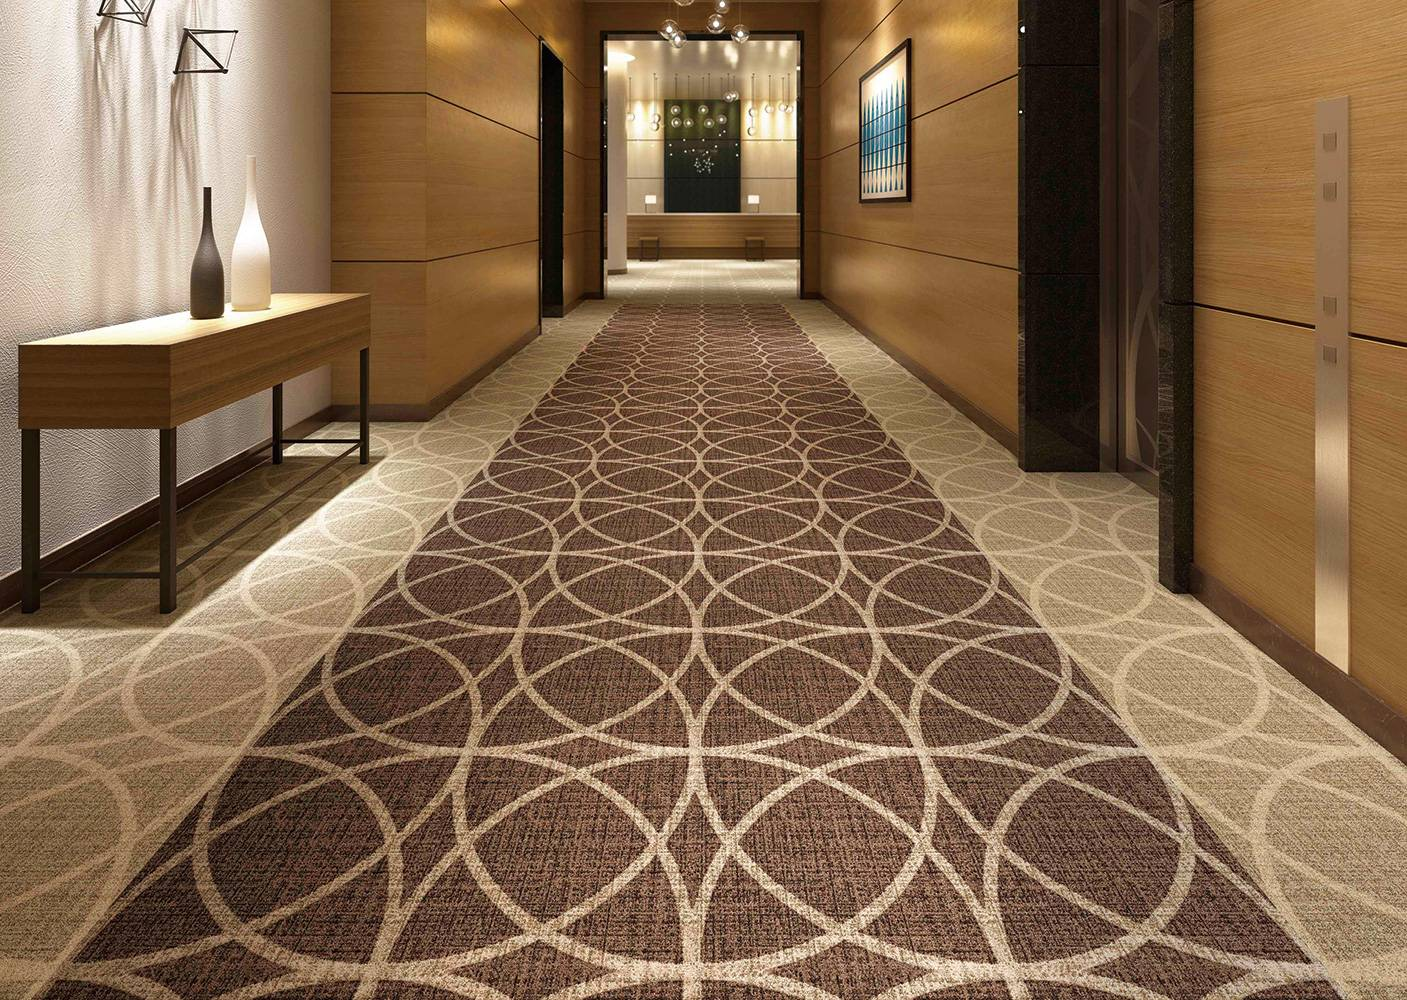 A good home doesn't stand out without carpet tiles